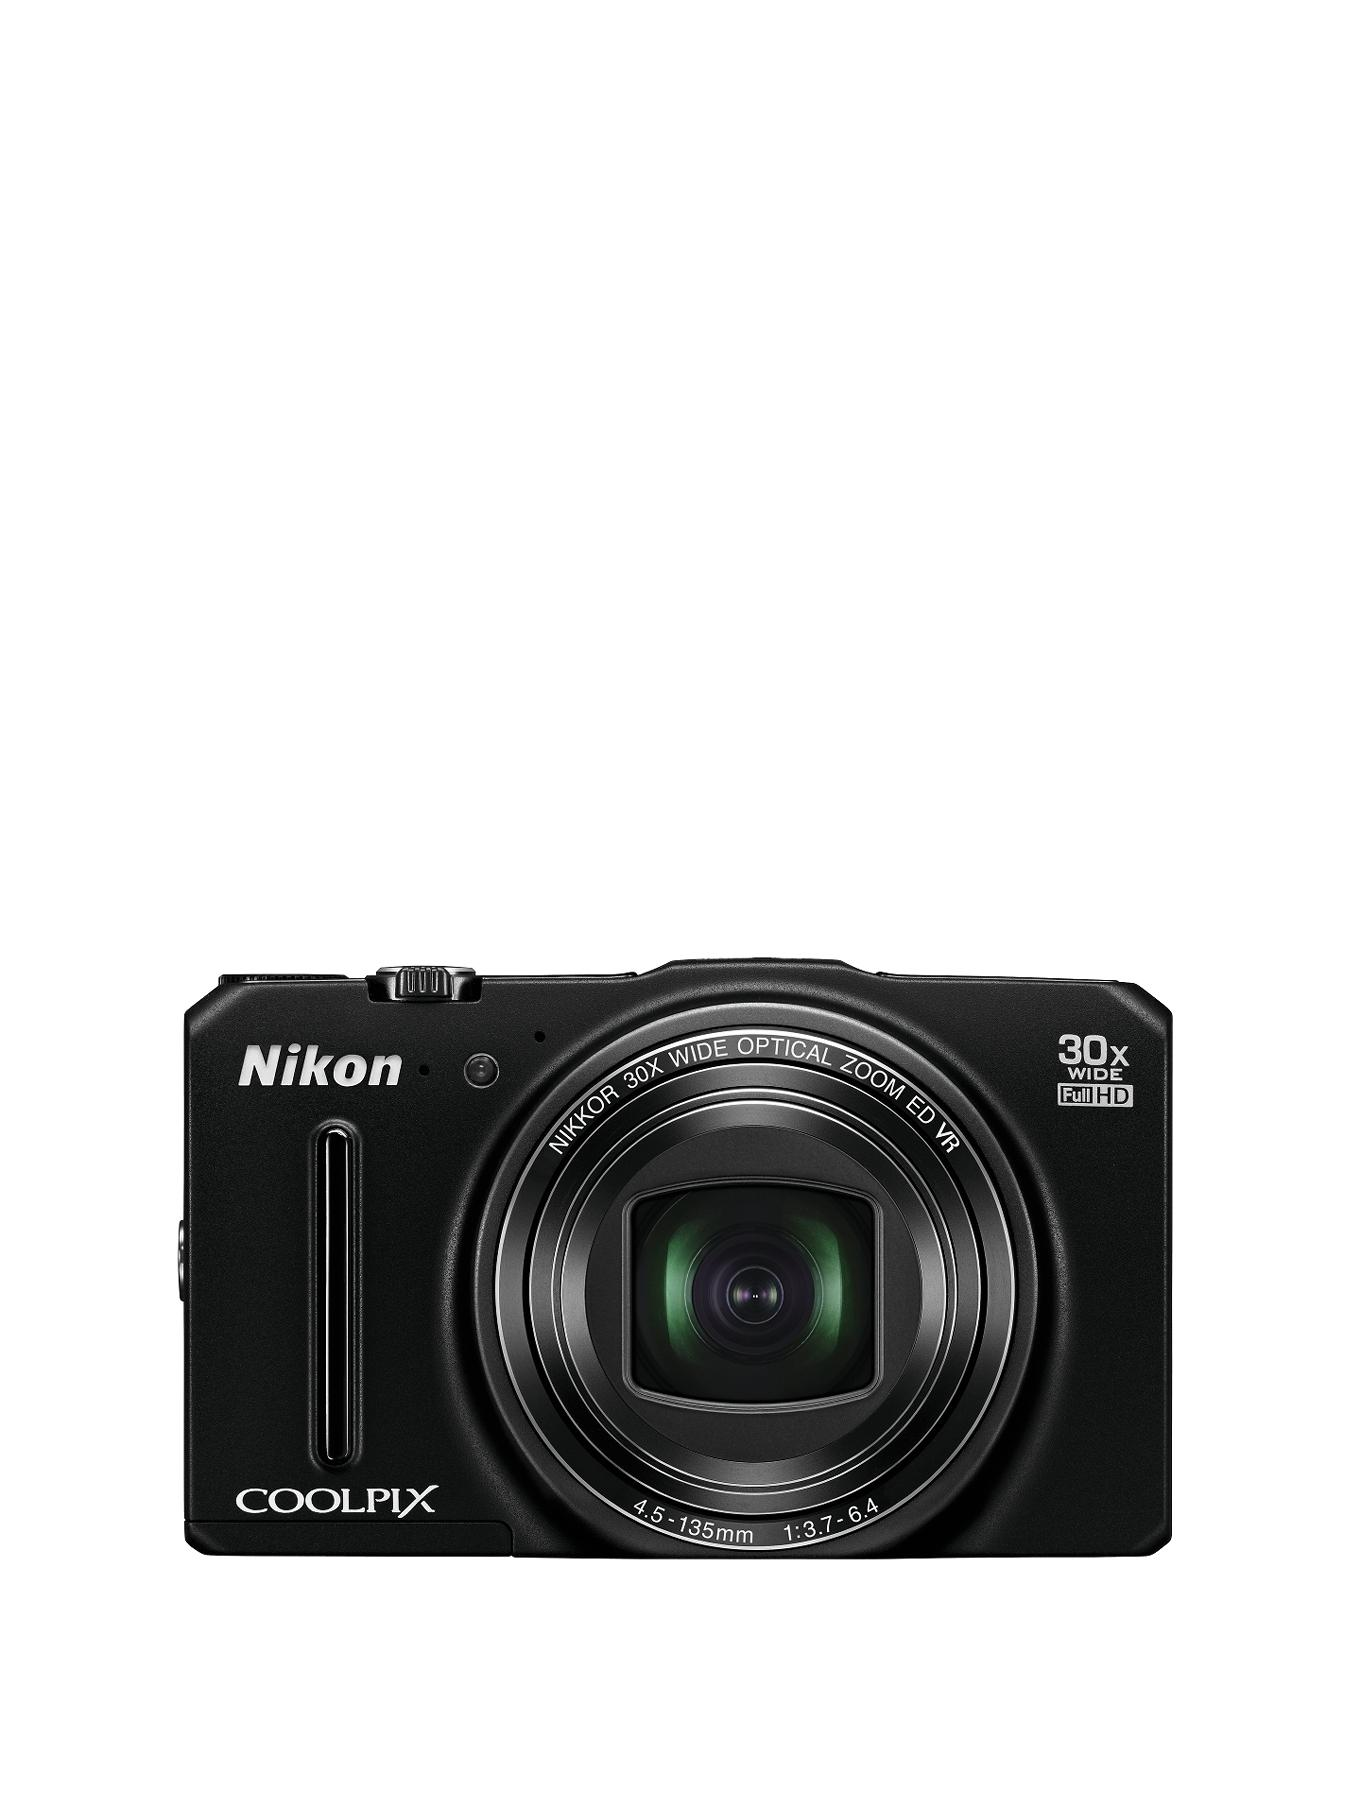 Nikon COOLPIX S9700 Compact Digital Camera